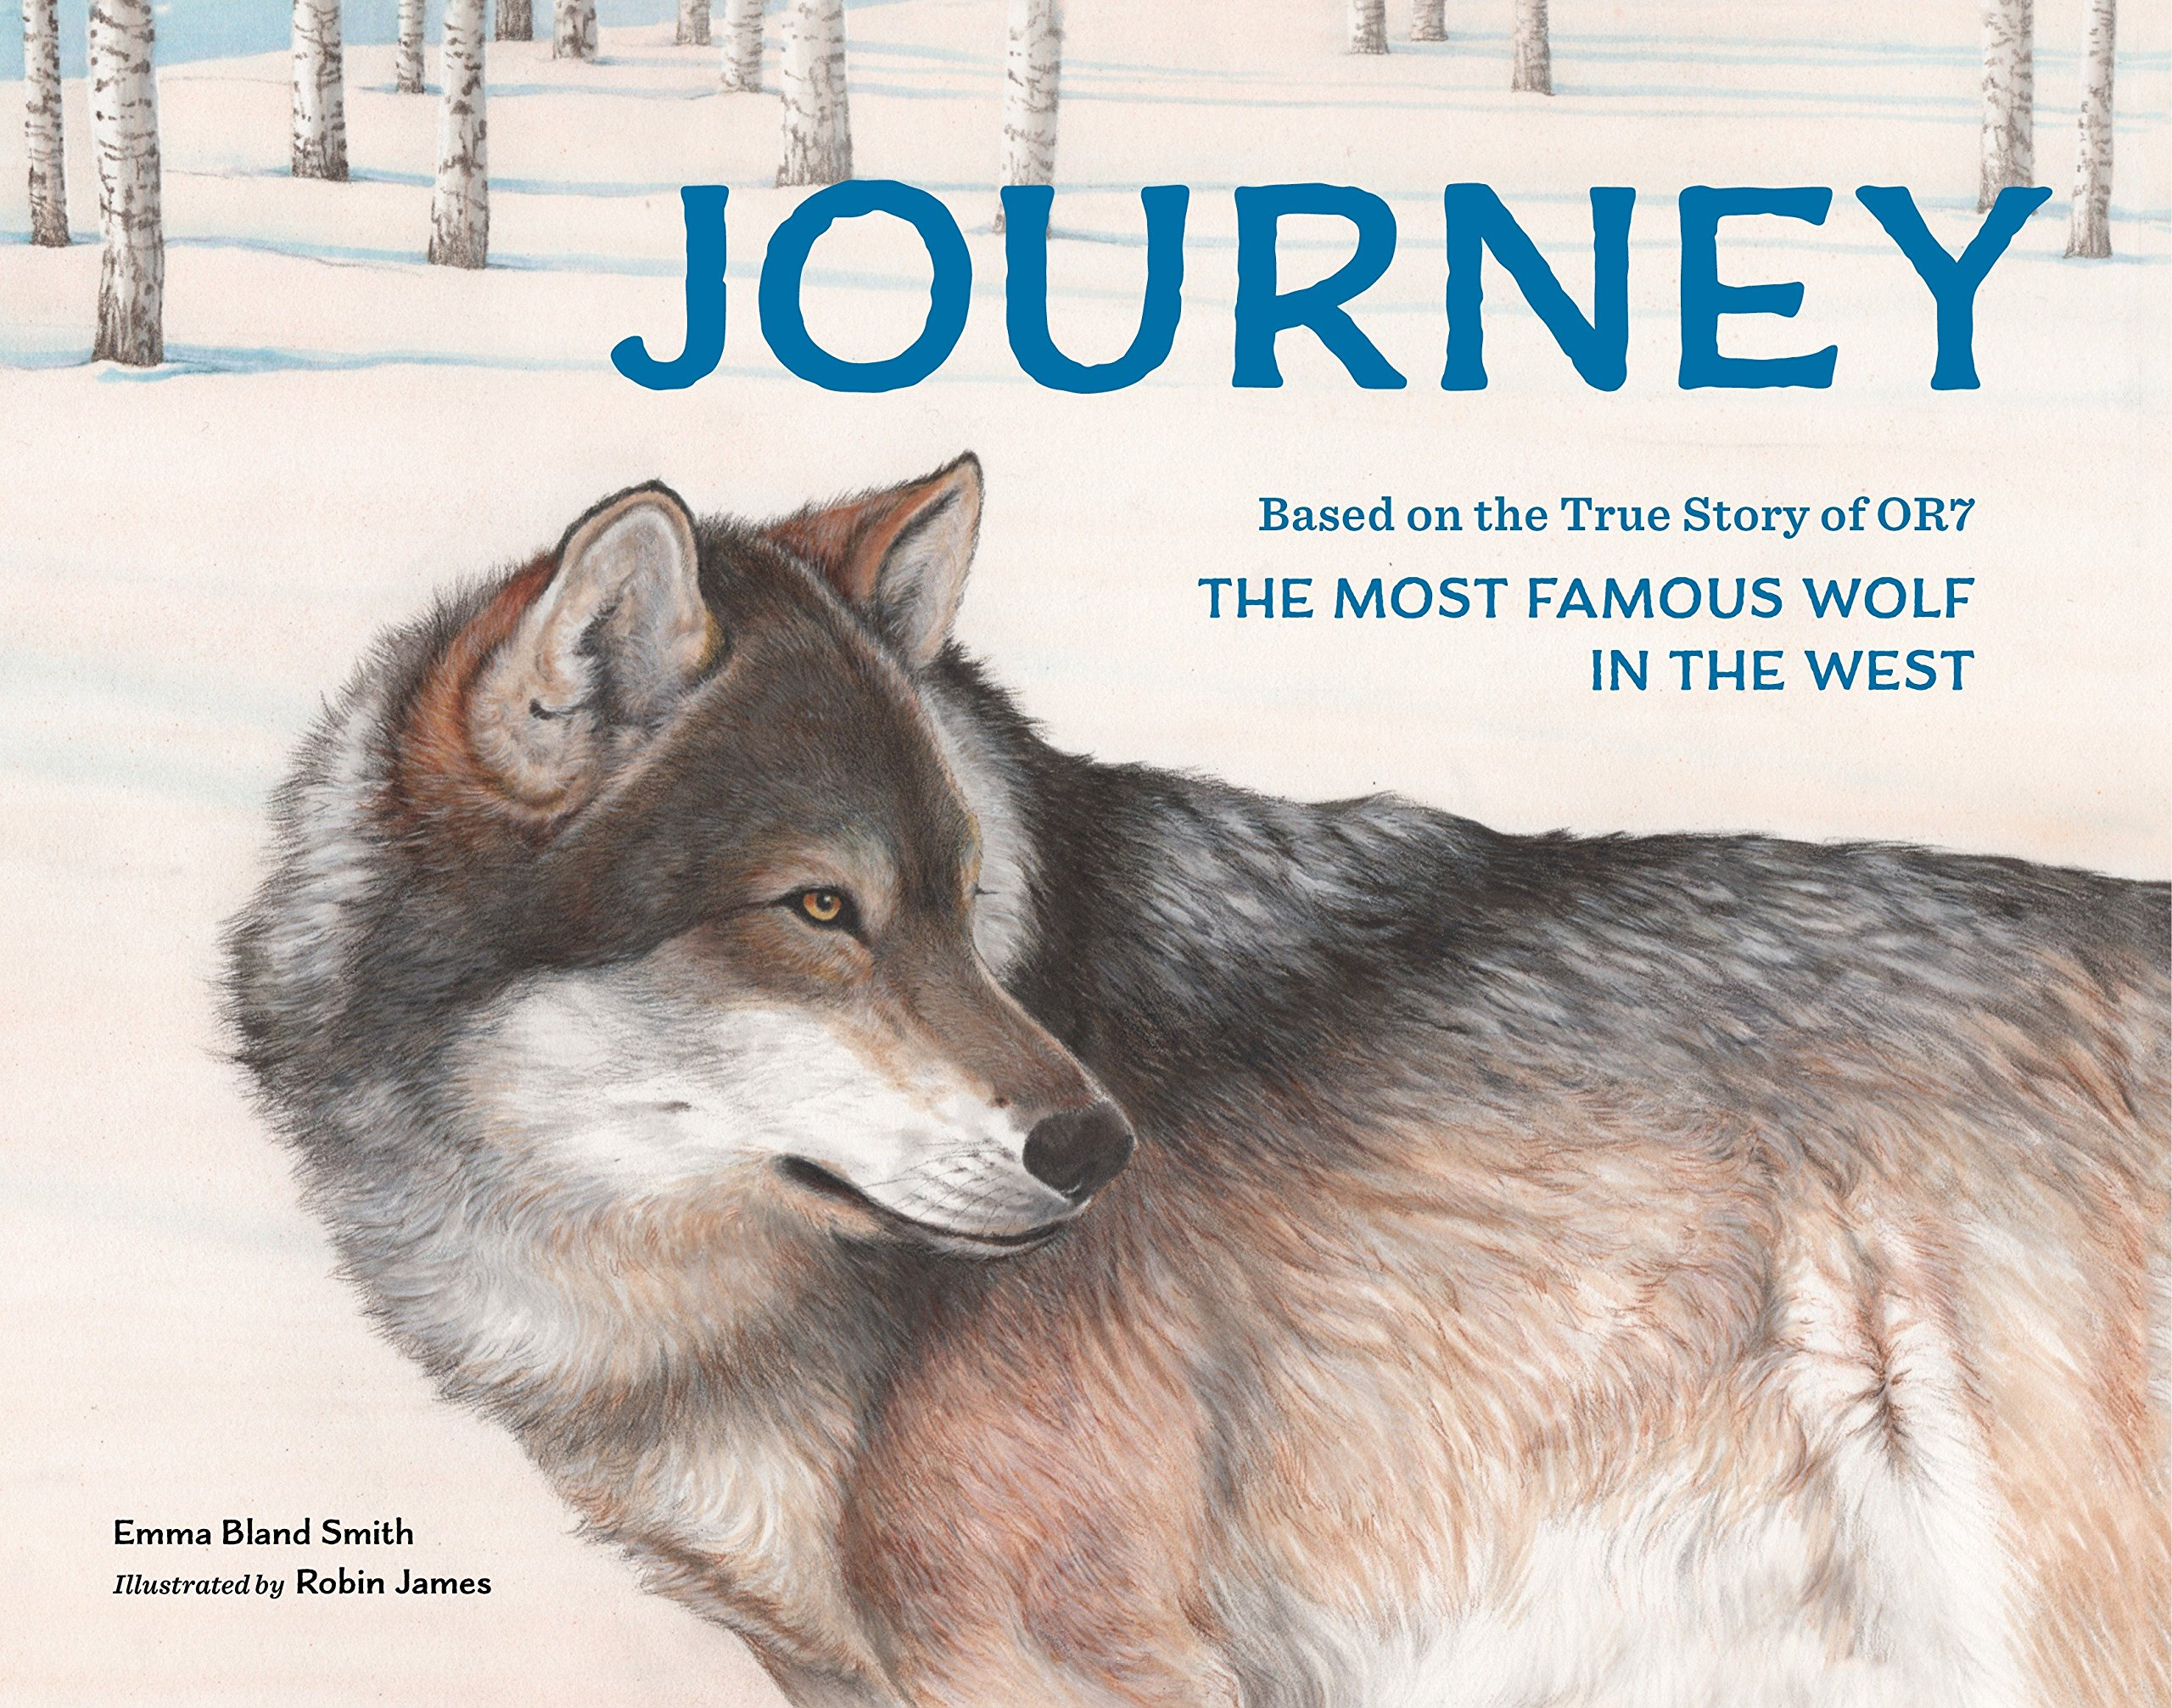 Life with wolves: How scientists and writers settled next to wolves, and what people gave these experiments